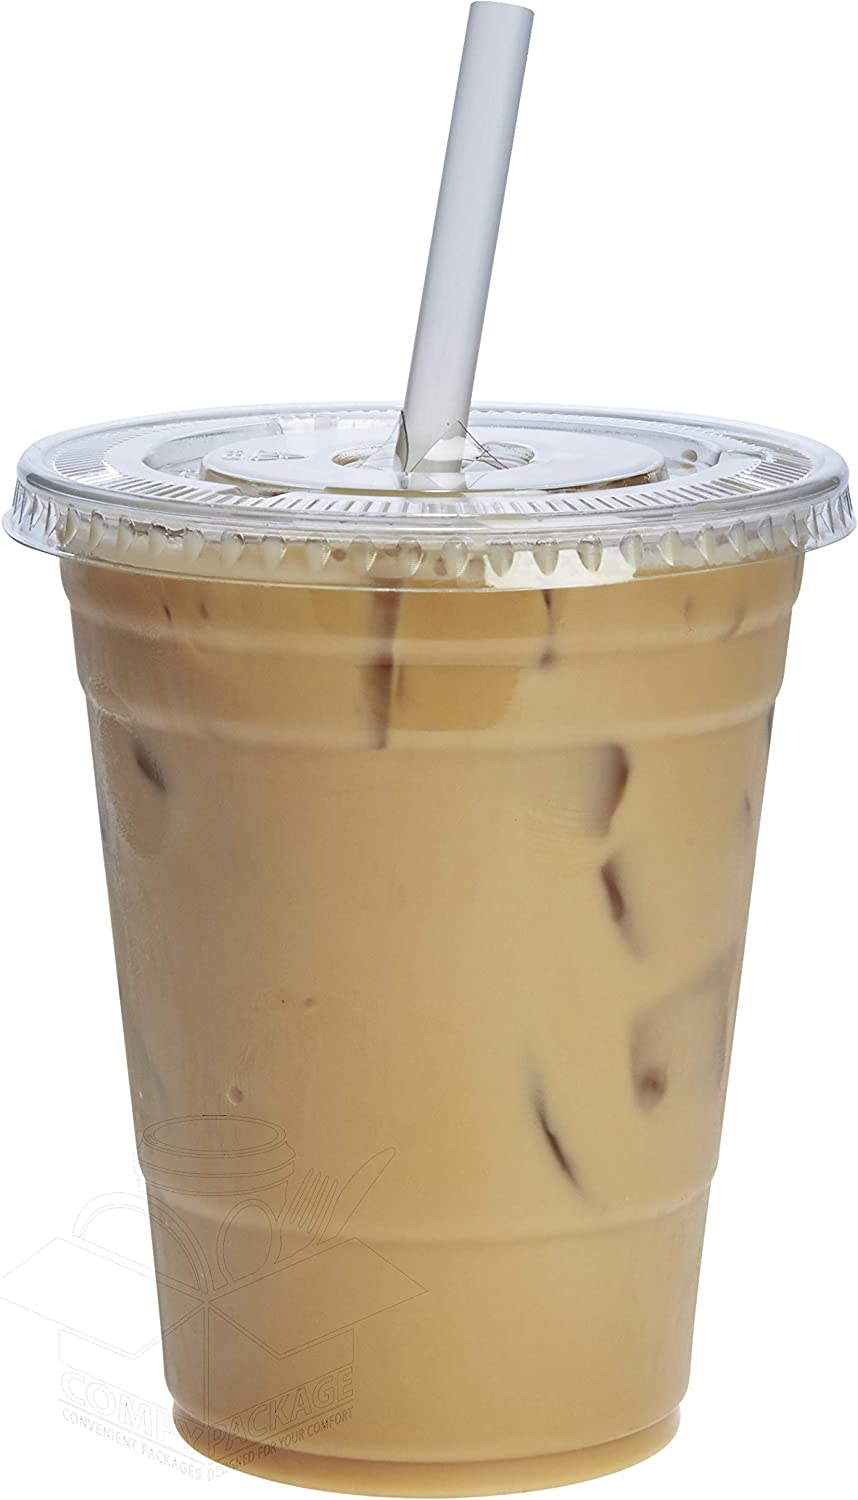 [100 Sets - 16 oz.] Plastic Cups With Flat Lids: Kitchen & Dining